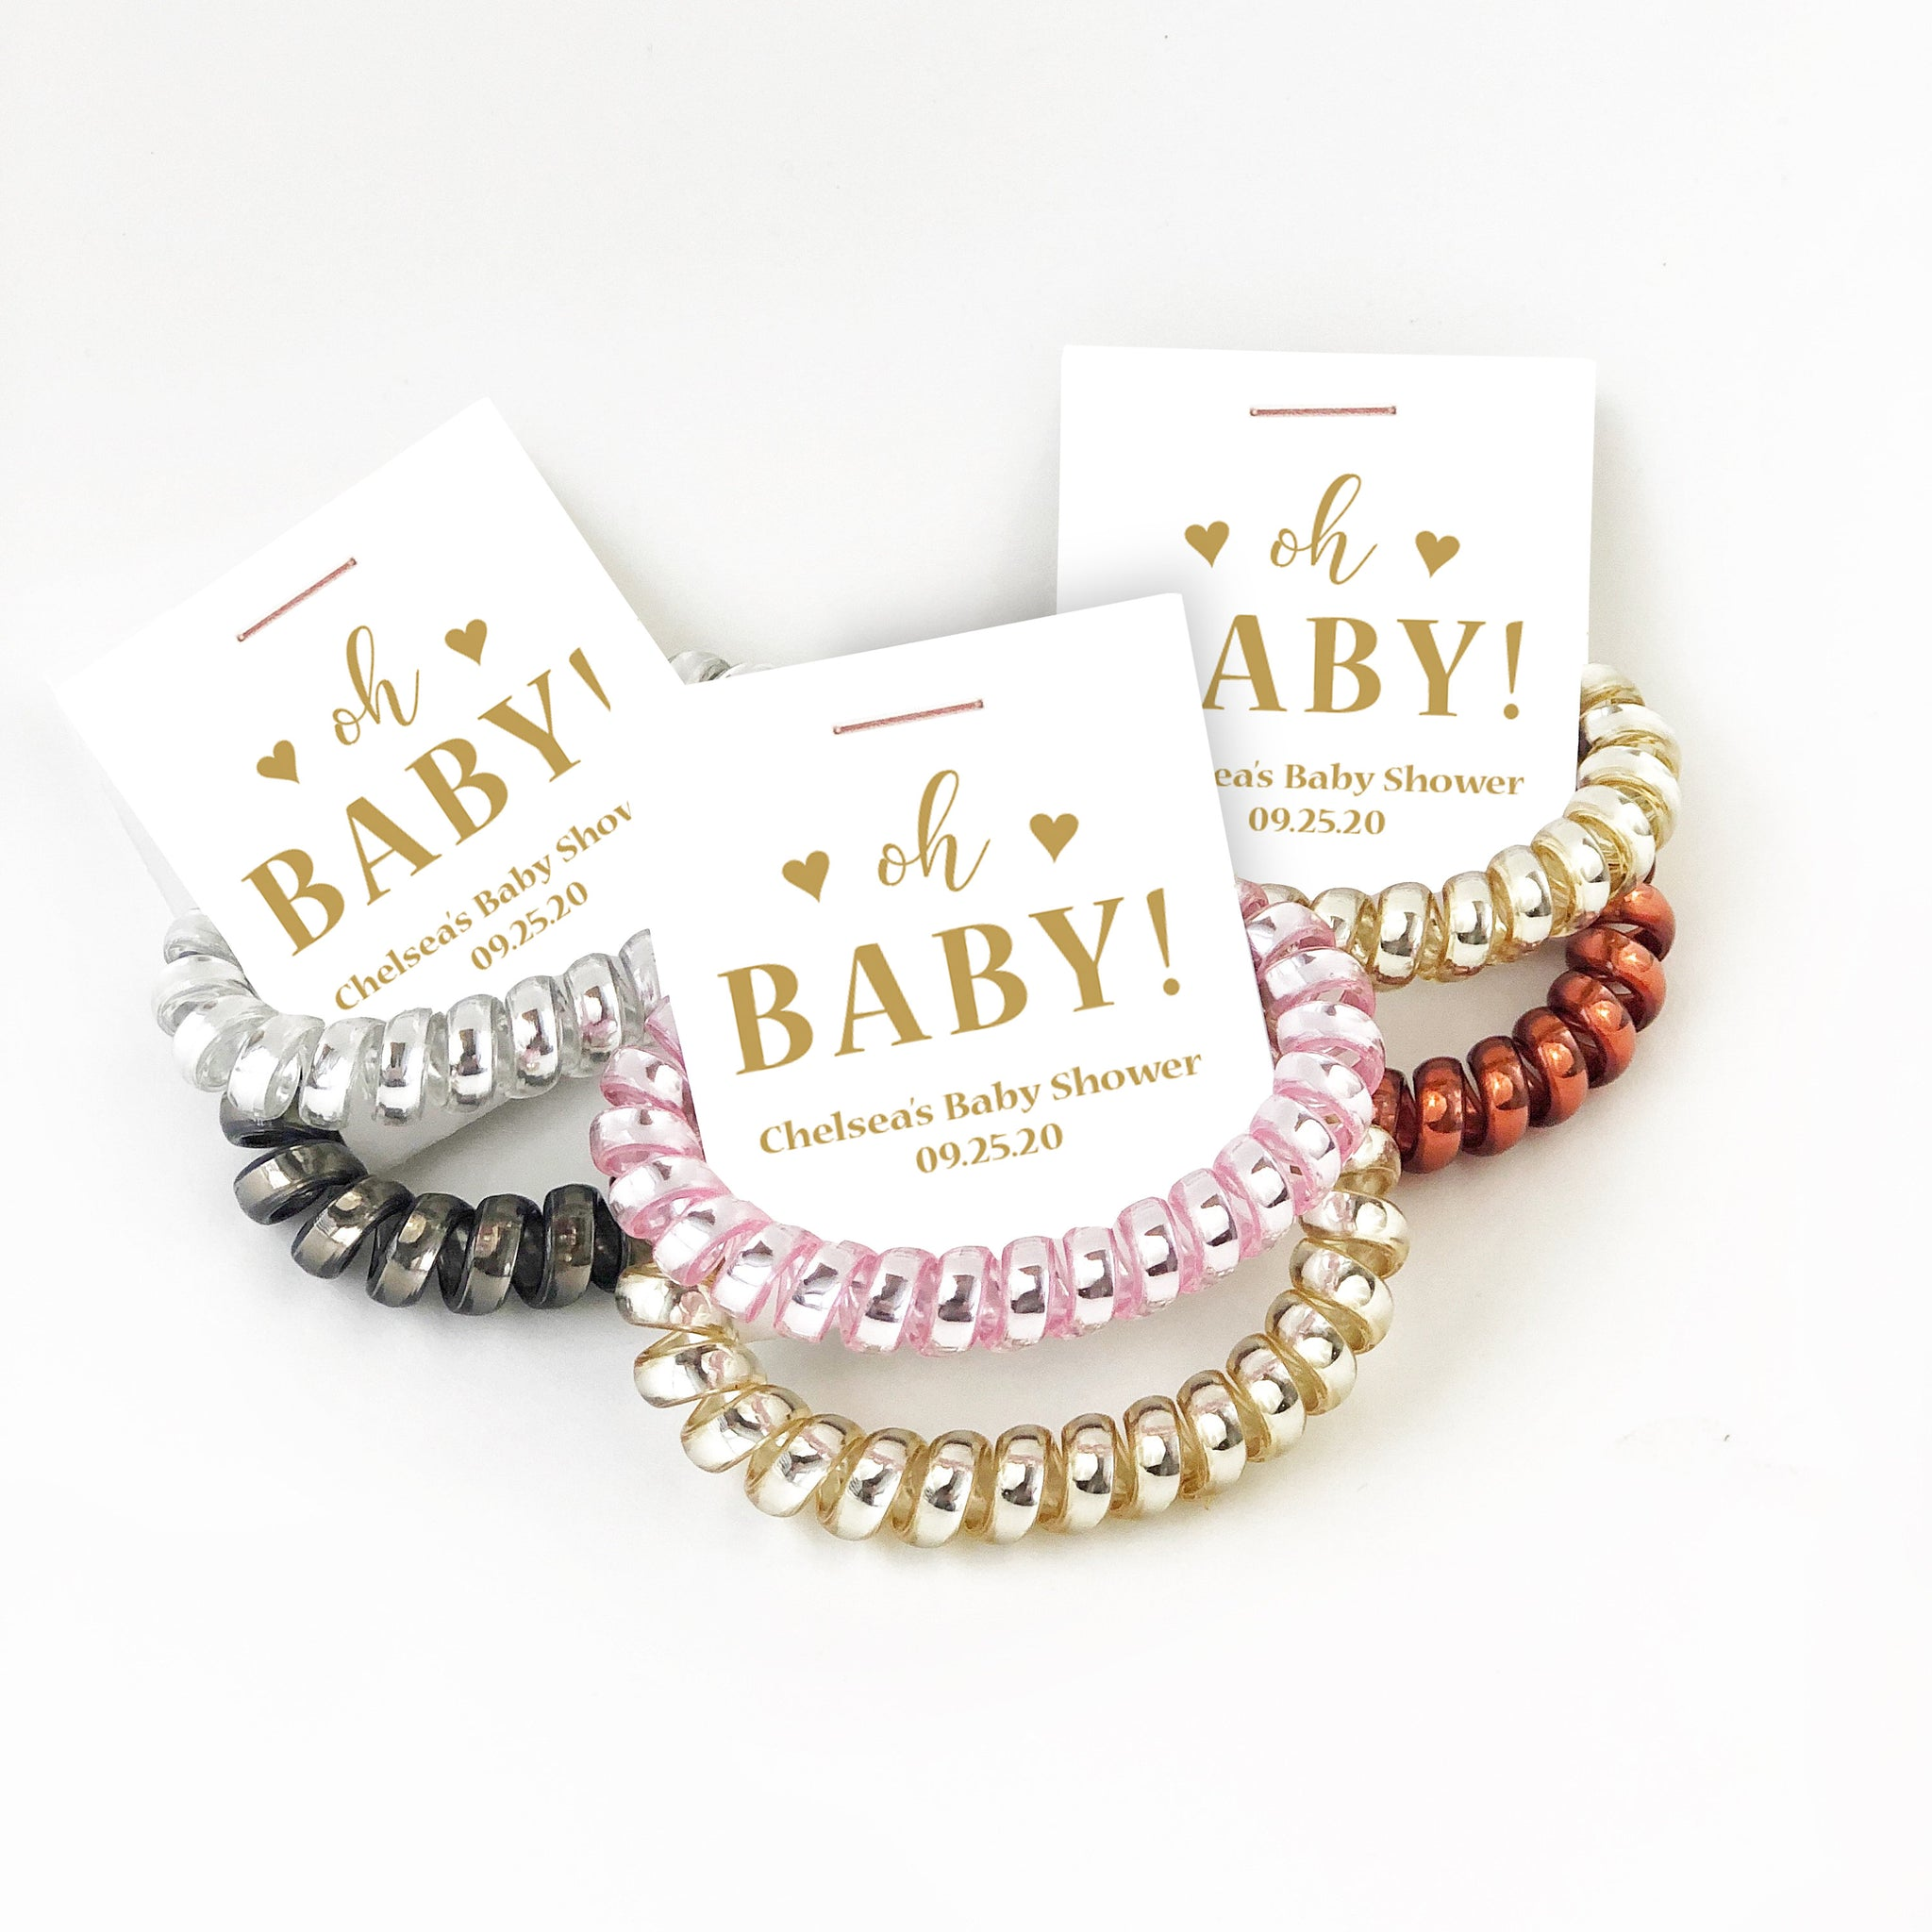 Gold Baby Shower Favors Gender Neutral, Spiral Hair Ties - @PlumPolkaDot